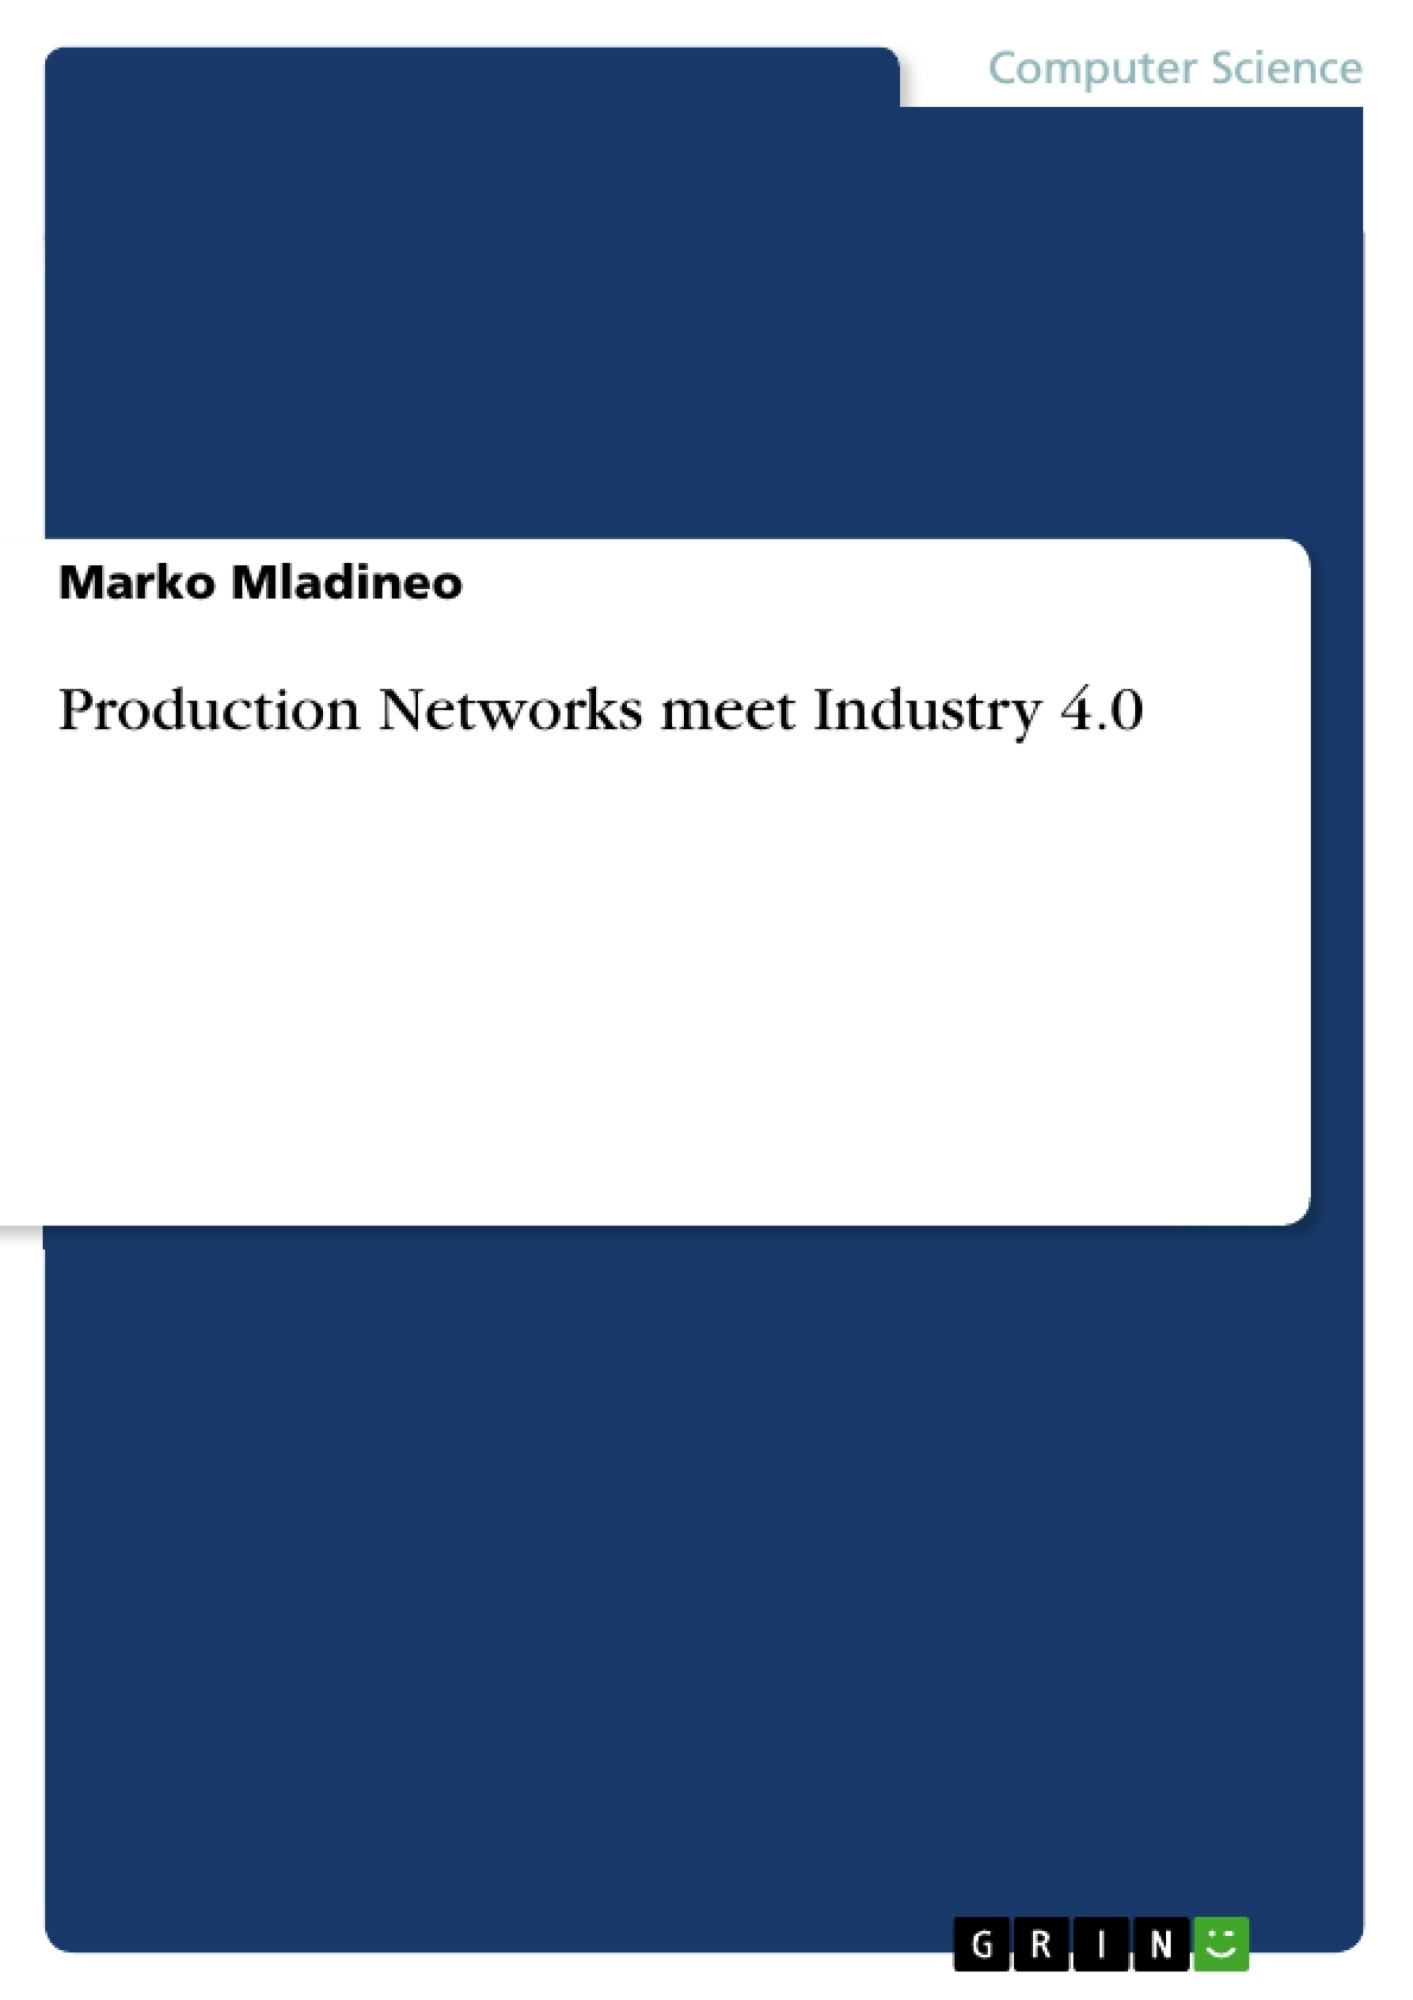 Title: Production Networks meet Industry 4.0